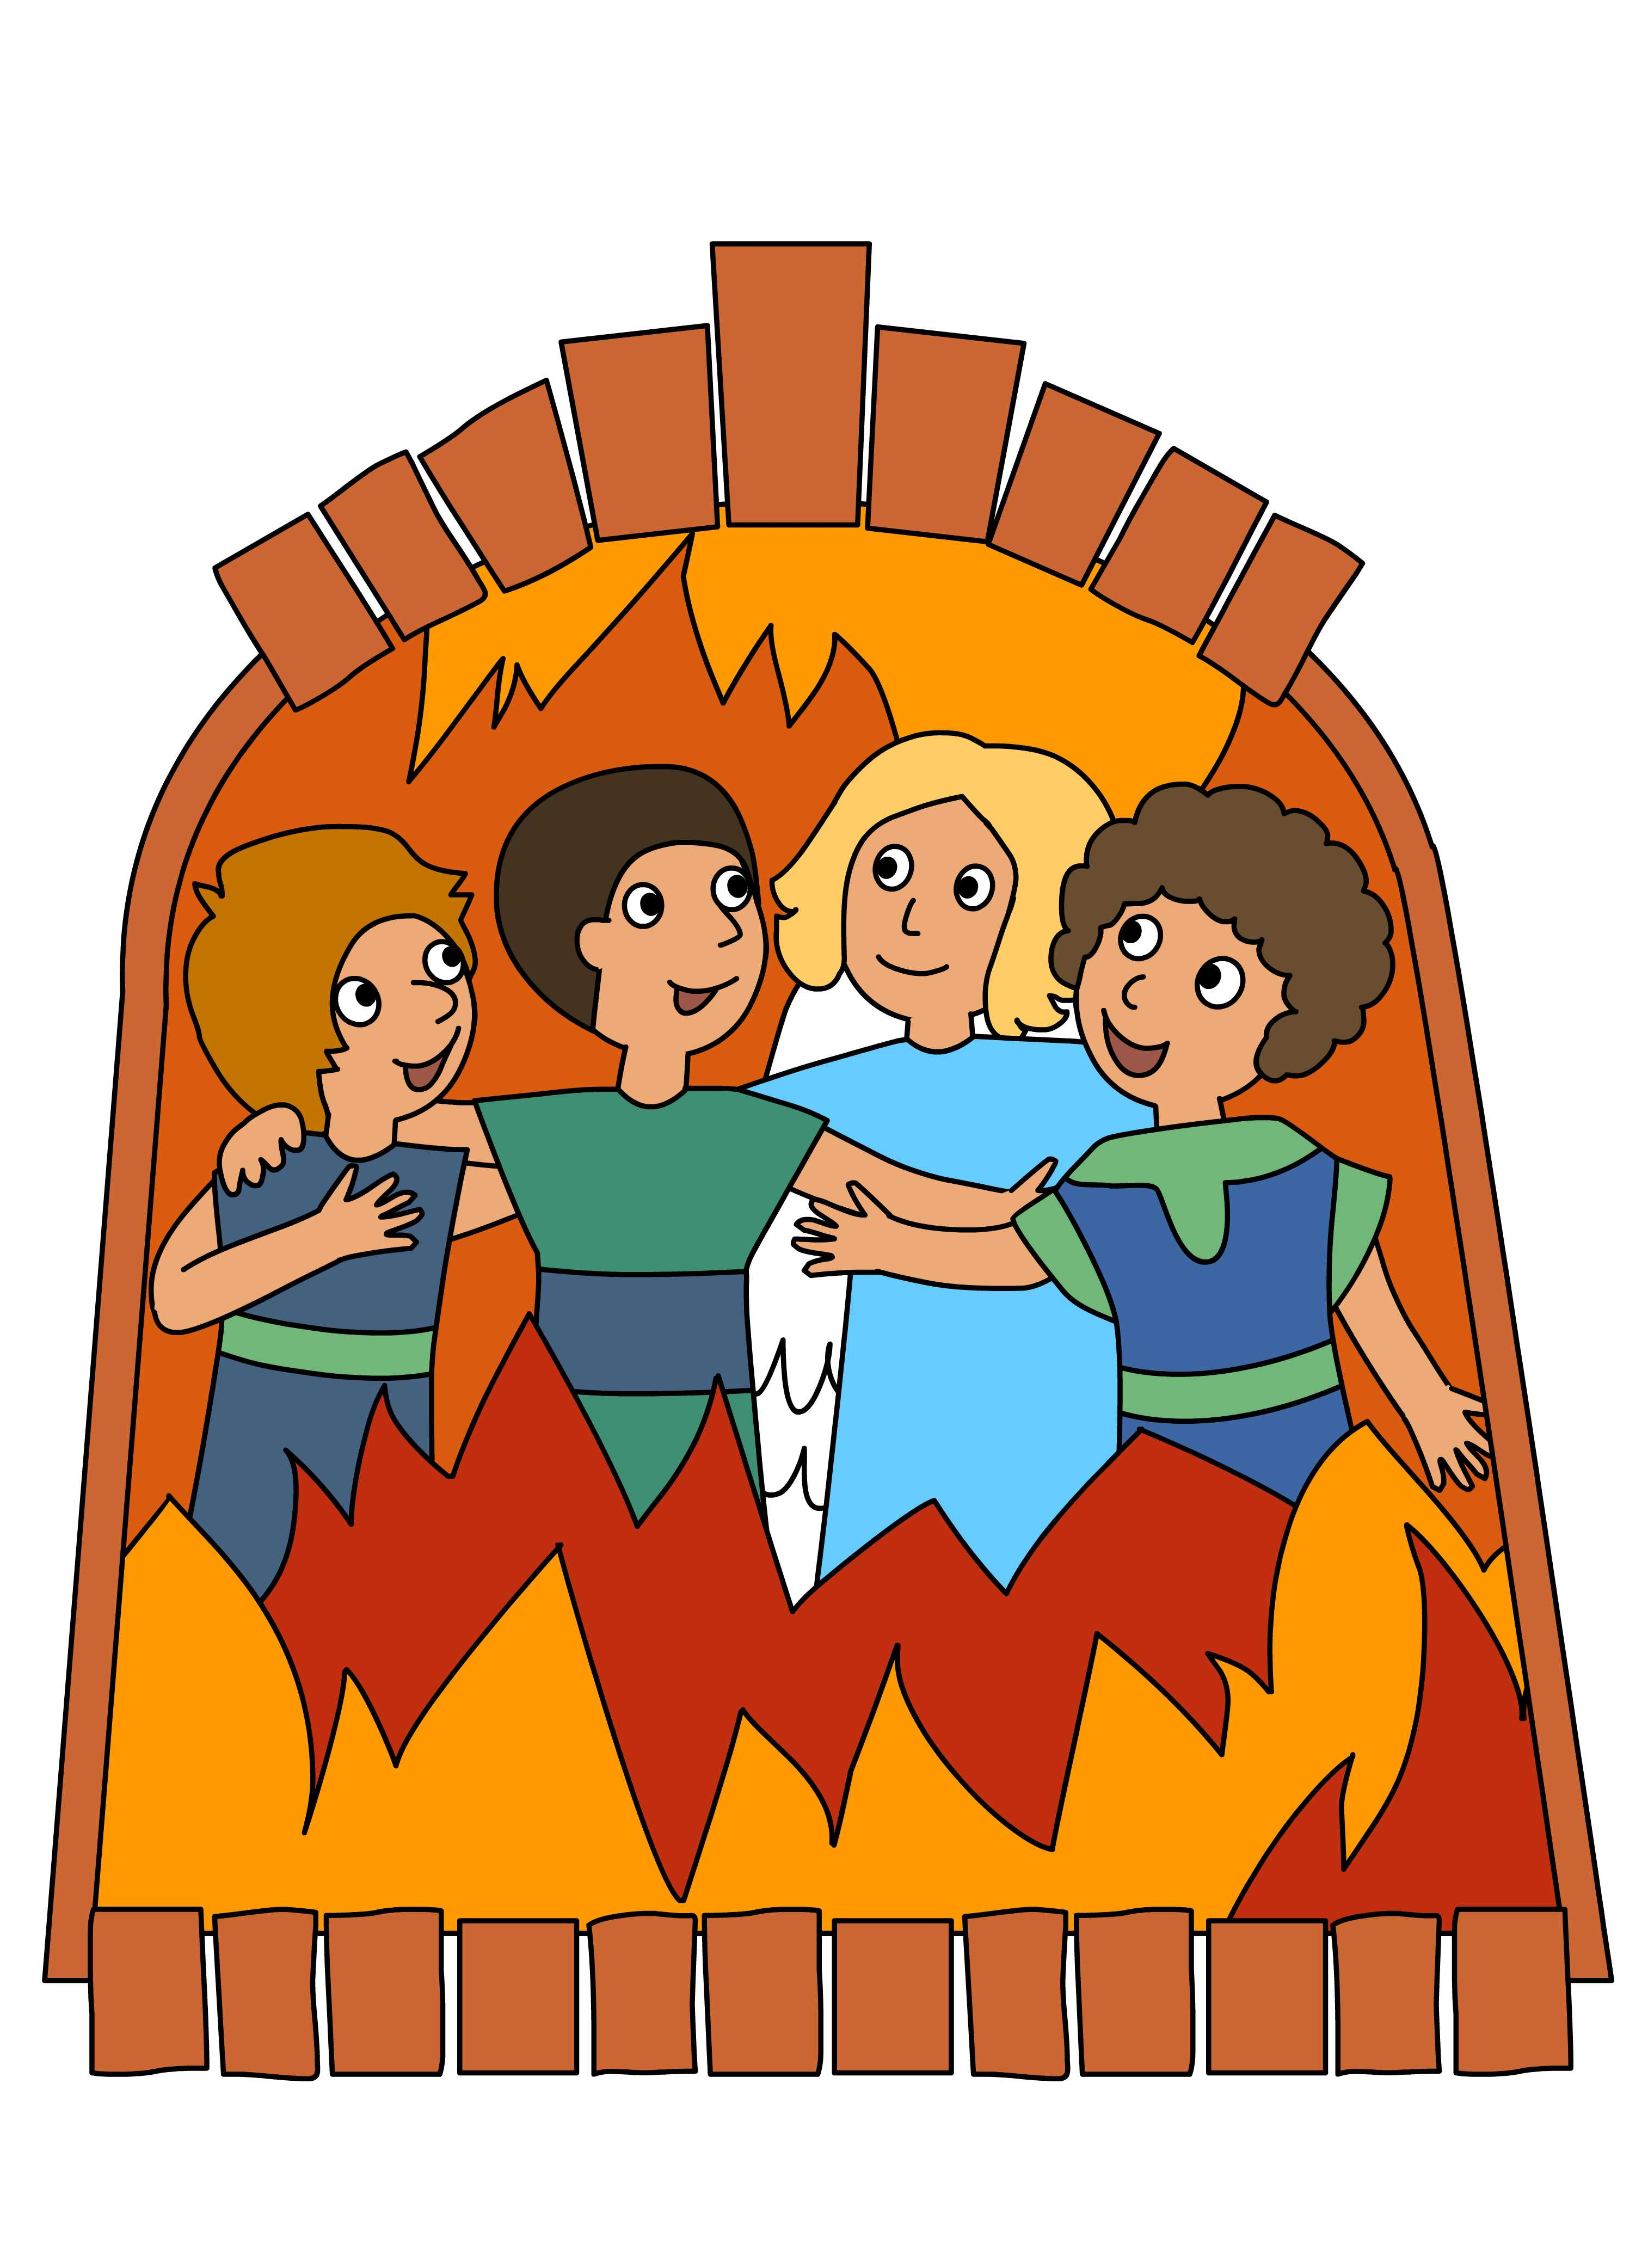 Shadrach clipart vector free download Shadrach Meshach And Abednego Clipart at GetDrawings.com ... vector free download